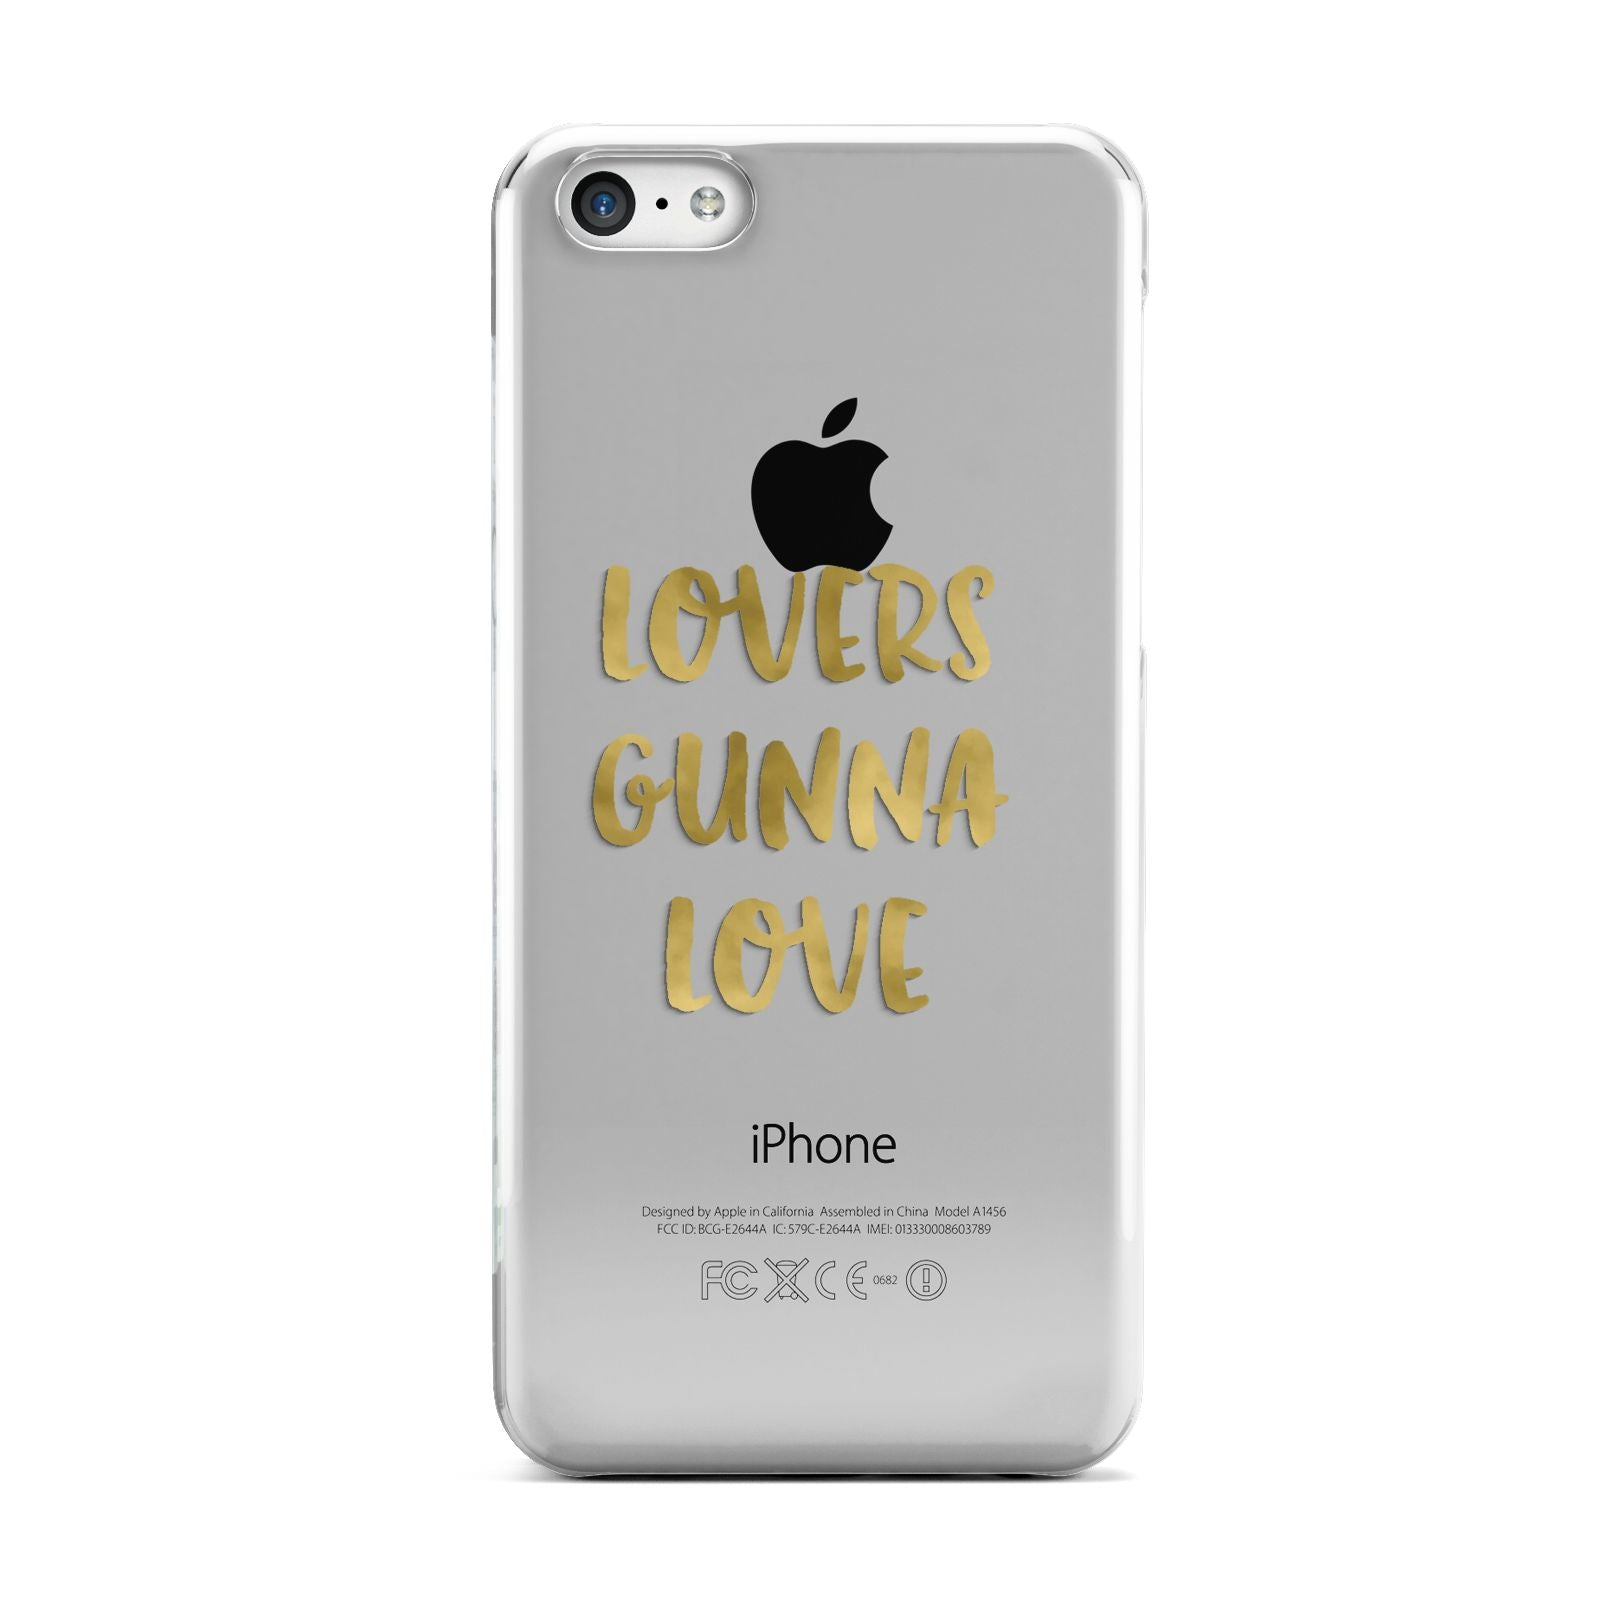 Lovers Gunna Love Real Gold Foil Apple iPhone 5c Case